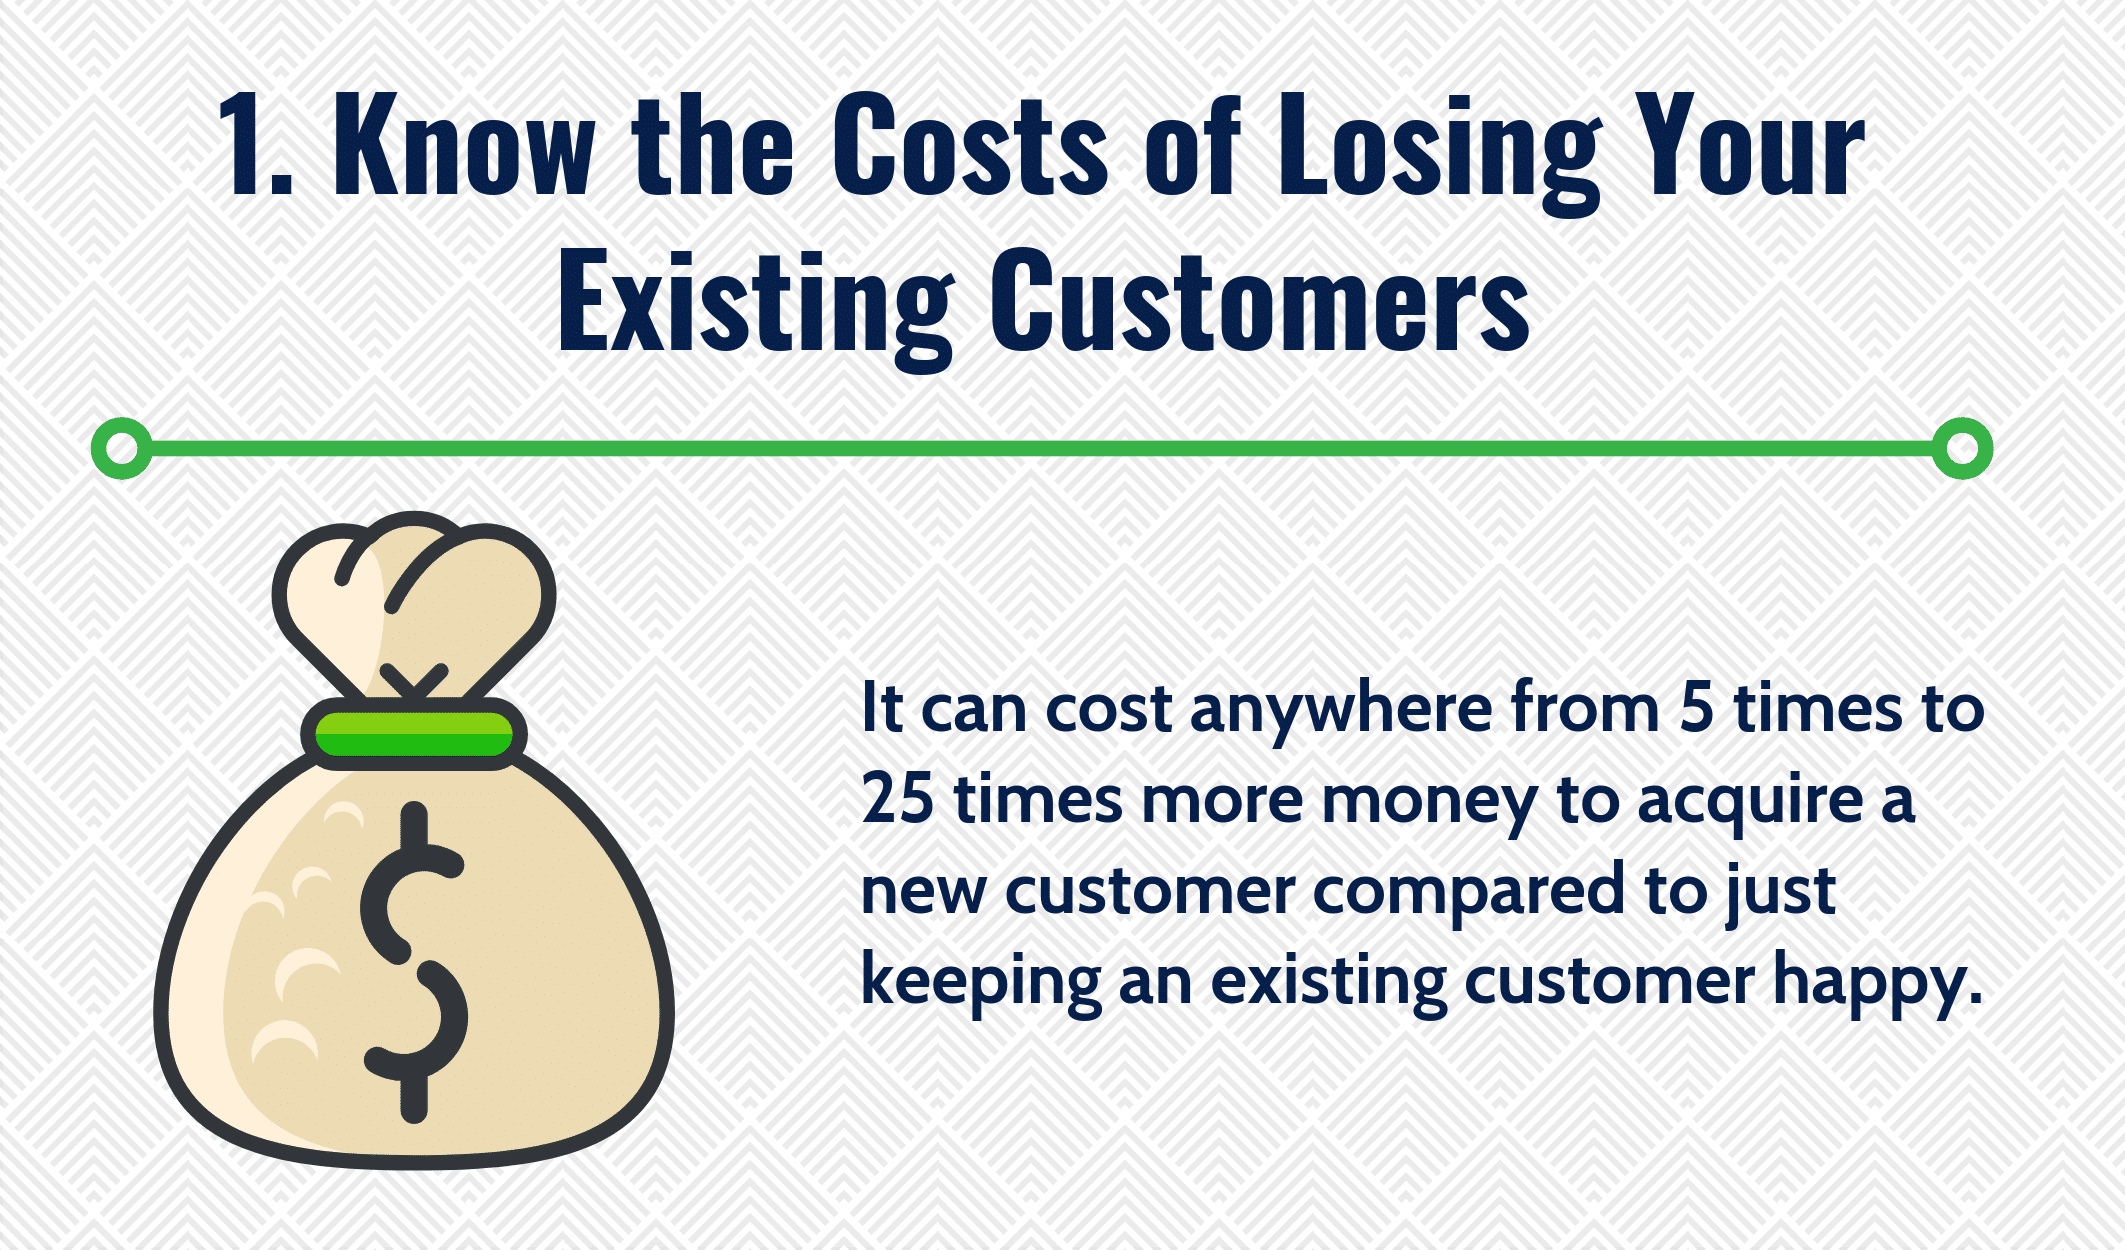 Know the Costs of Losing Your Existing Customers